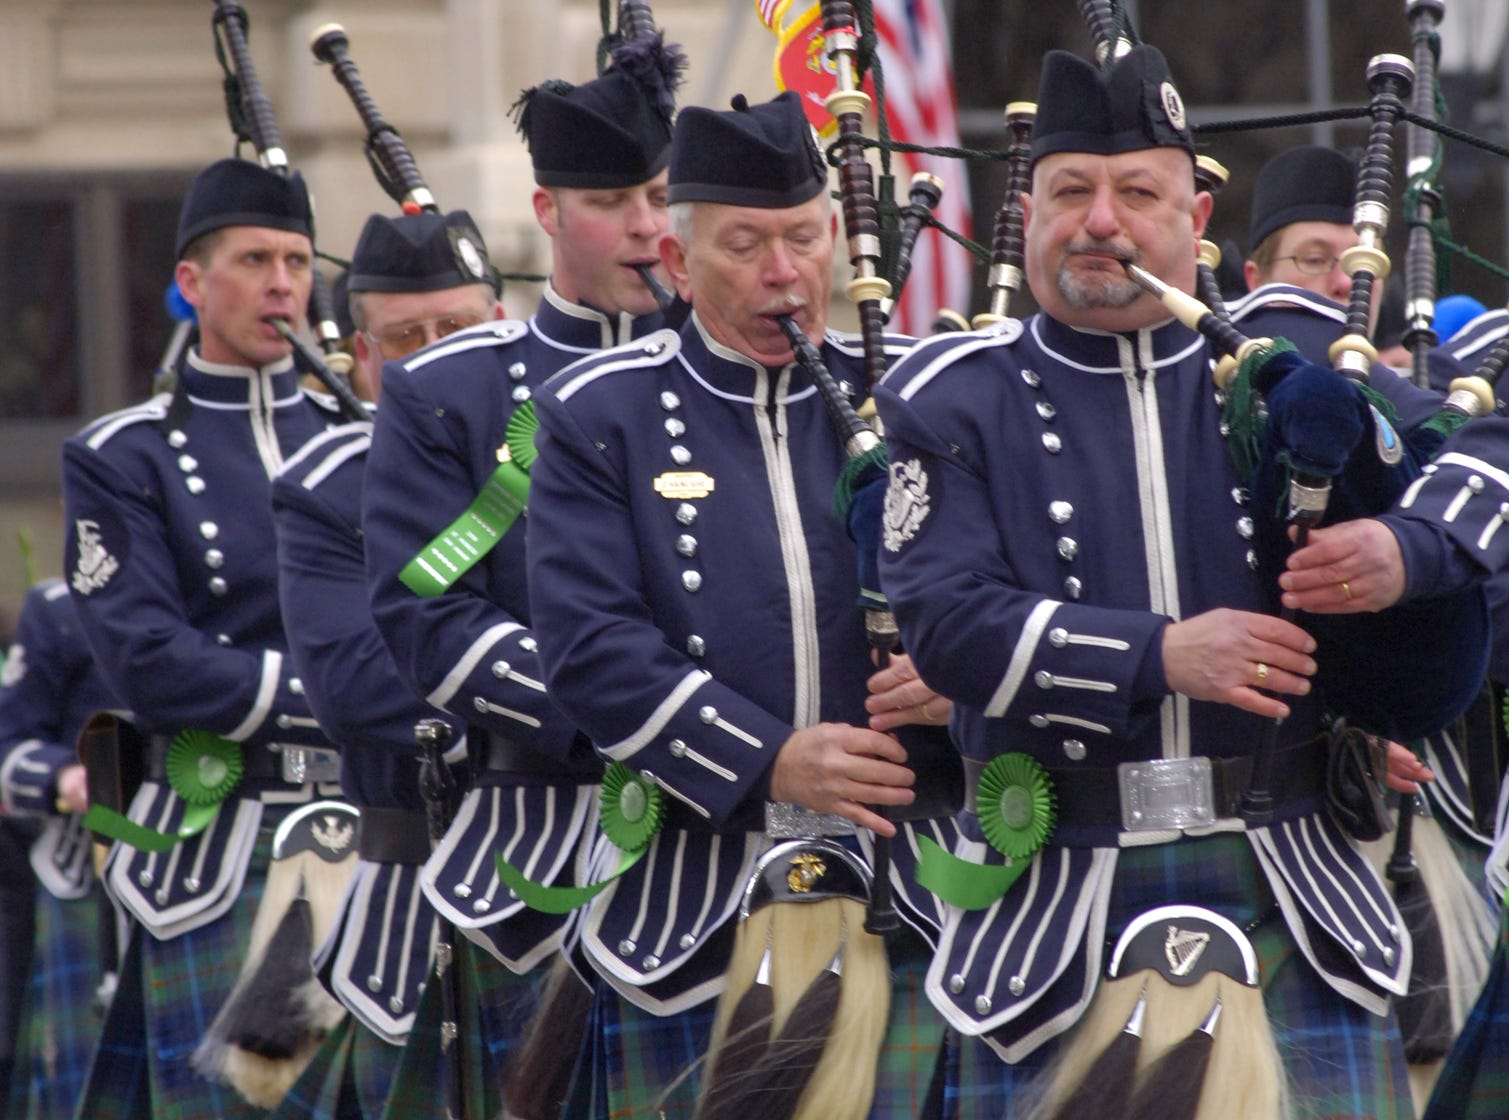 2006: Bagpipers from the Edward P. Maloney Memorial Pipe Band from Broome County were one of several bagpipe bands that marched in the St. Patrick's Day Parade in Binghamton on Saturday.